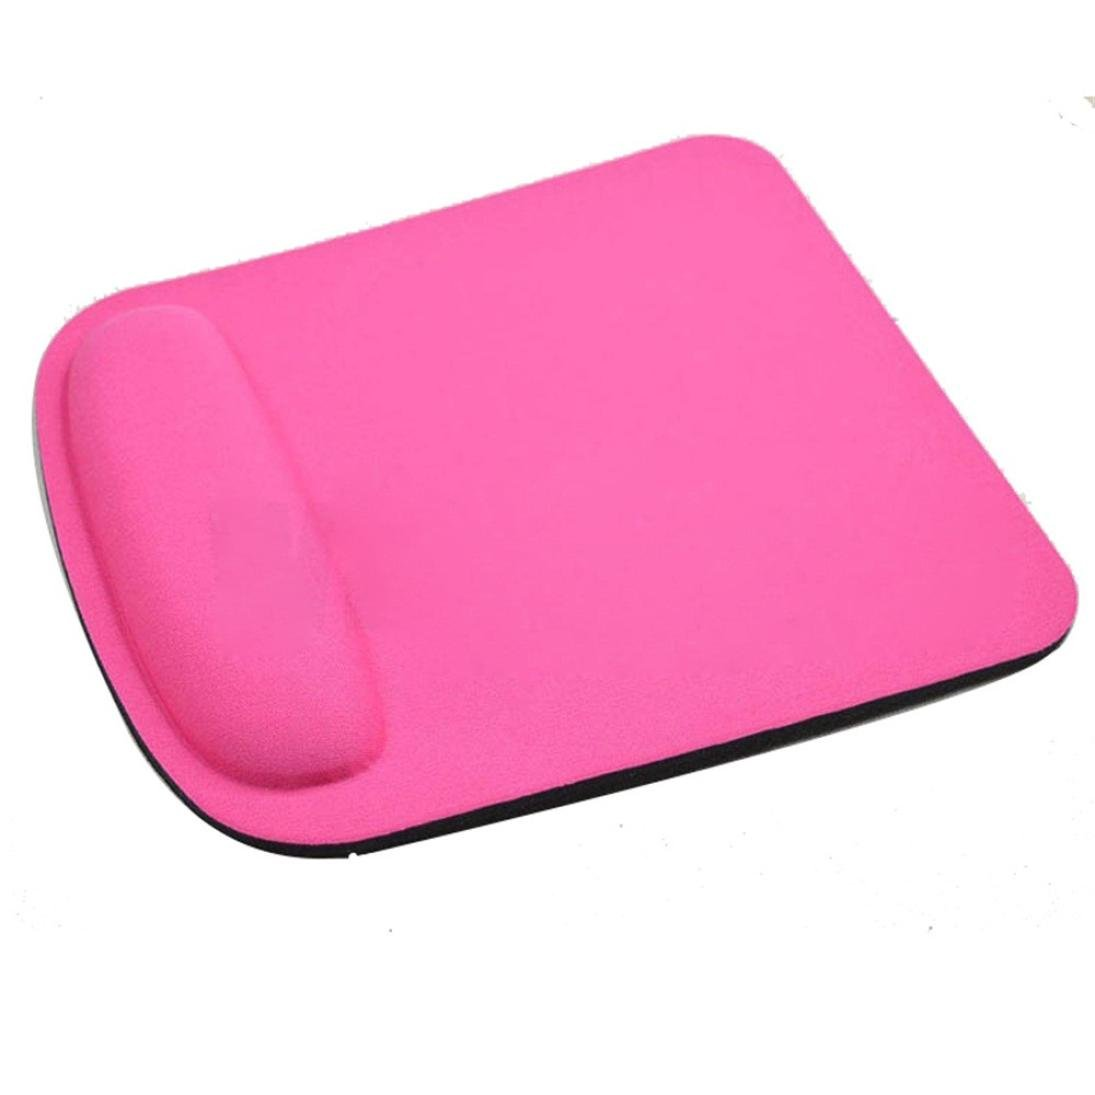 Coohole Gel Wrist Rest Support Game Mouse Mat Anti-slip Pad for Computer PC Laptop (Hot Pink 1, A)